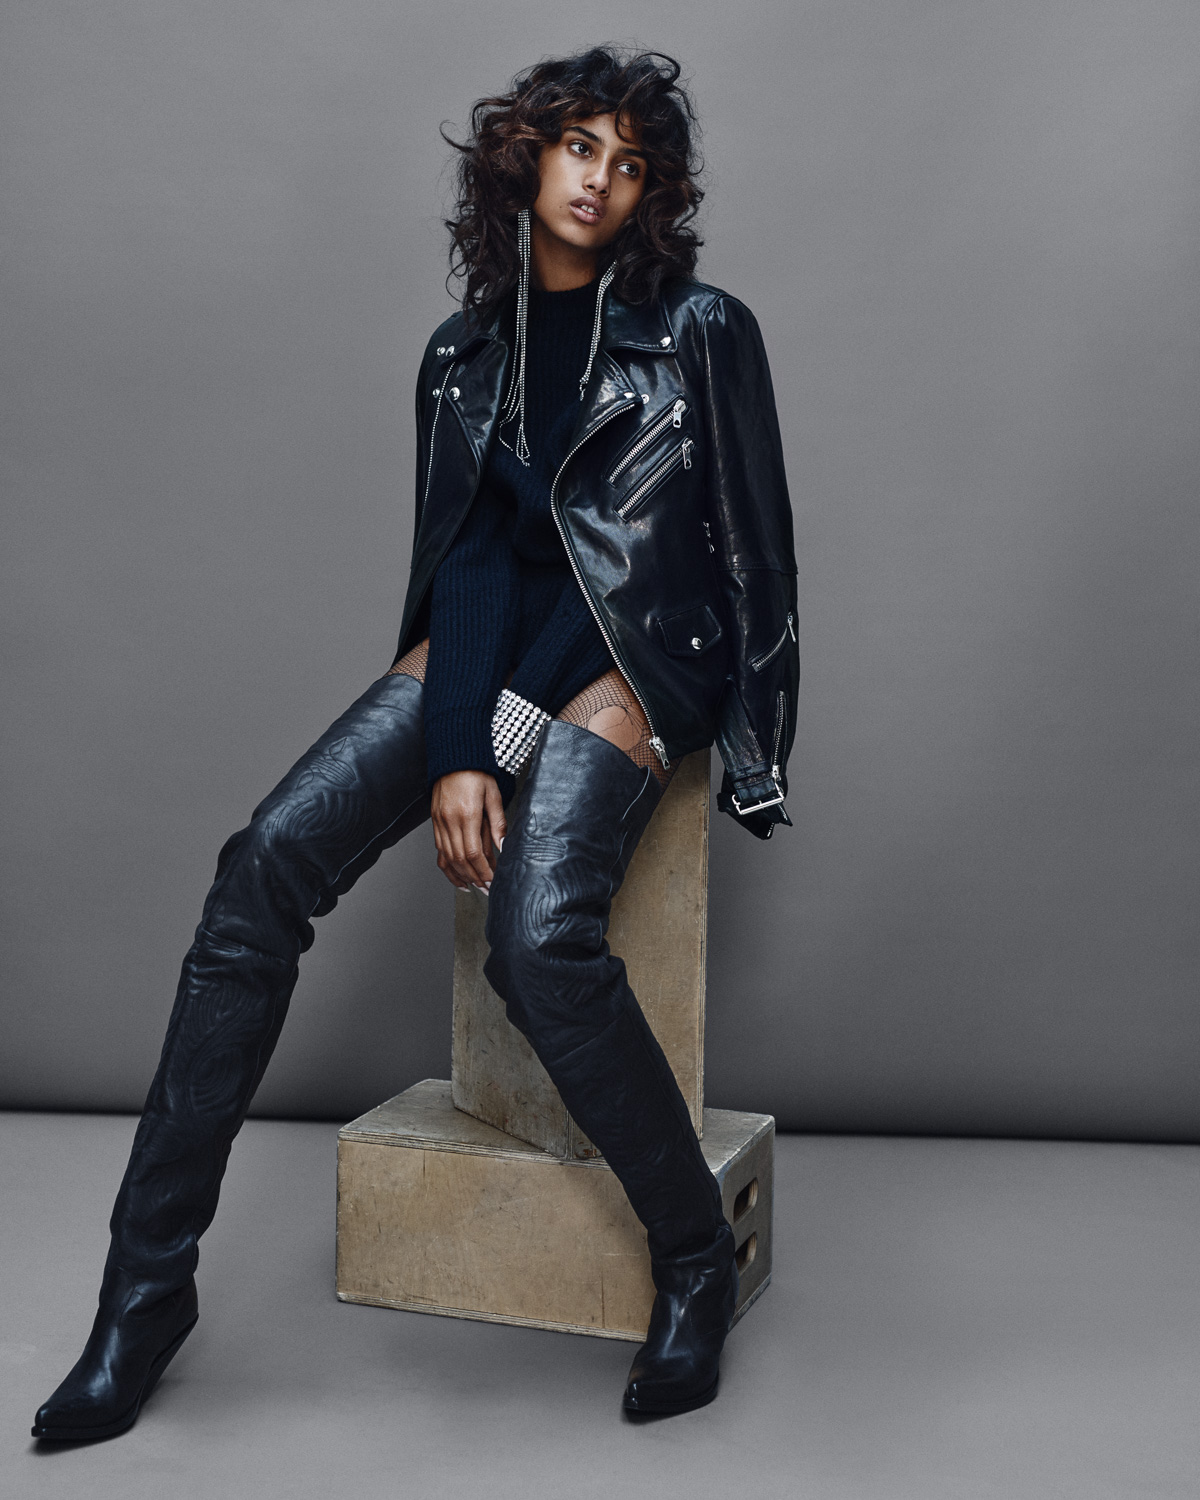 Imaan Hammam for VogueNL by Marc de Groot